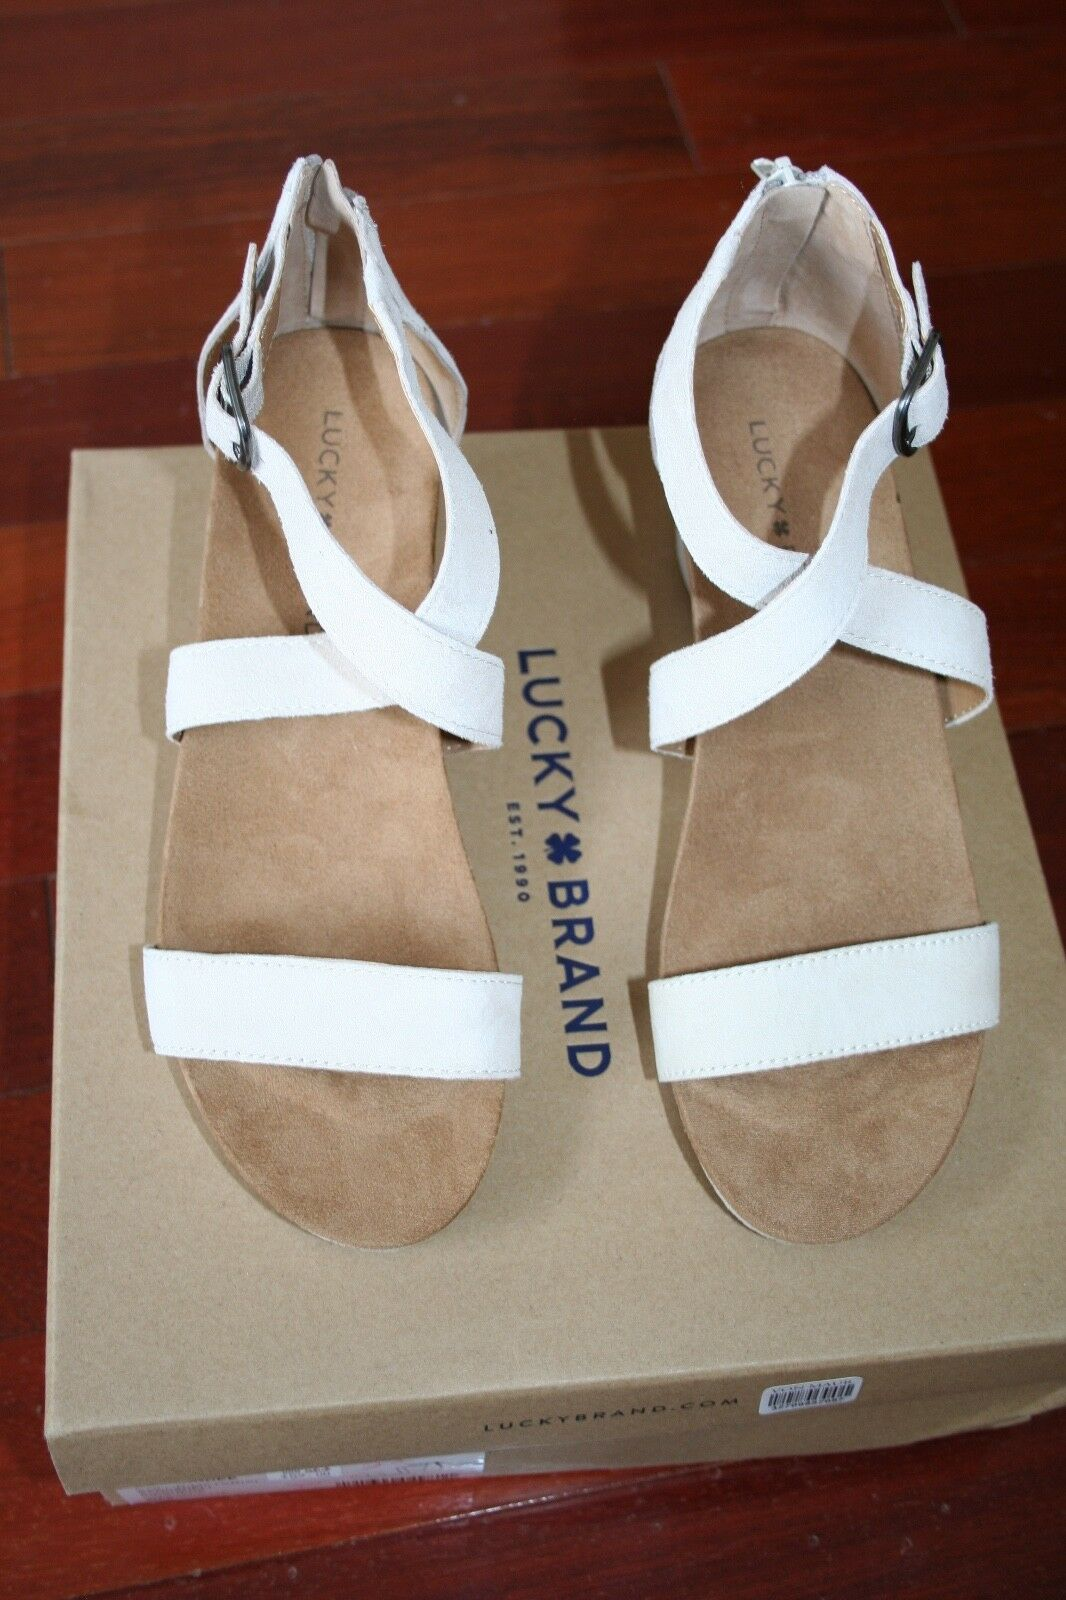 NWB-LUCKY BRAND SIZE 8M SUEDE SUEDE SUEDE ANKLE SANDALS W WEDGE HEEL 9ec6bb